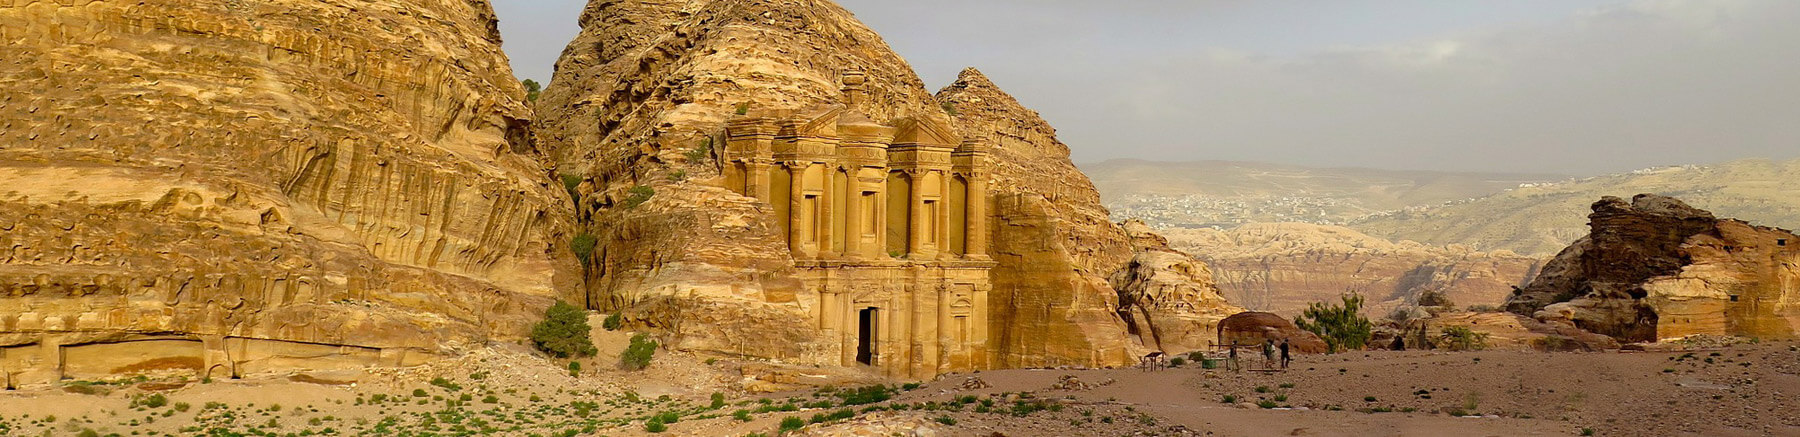 View of the archaeological site of Petra in Jordan's desert